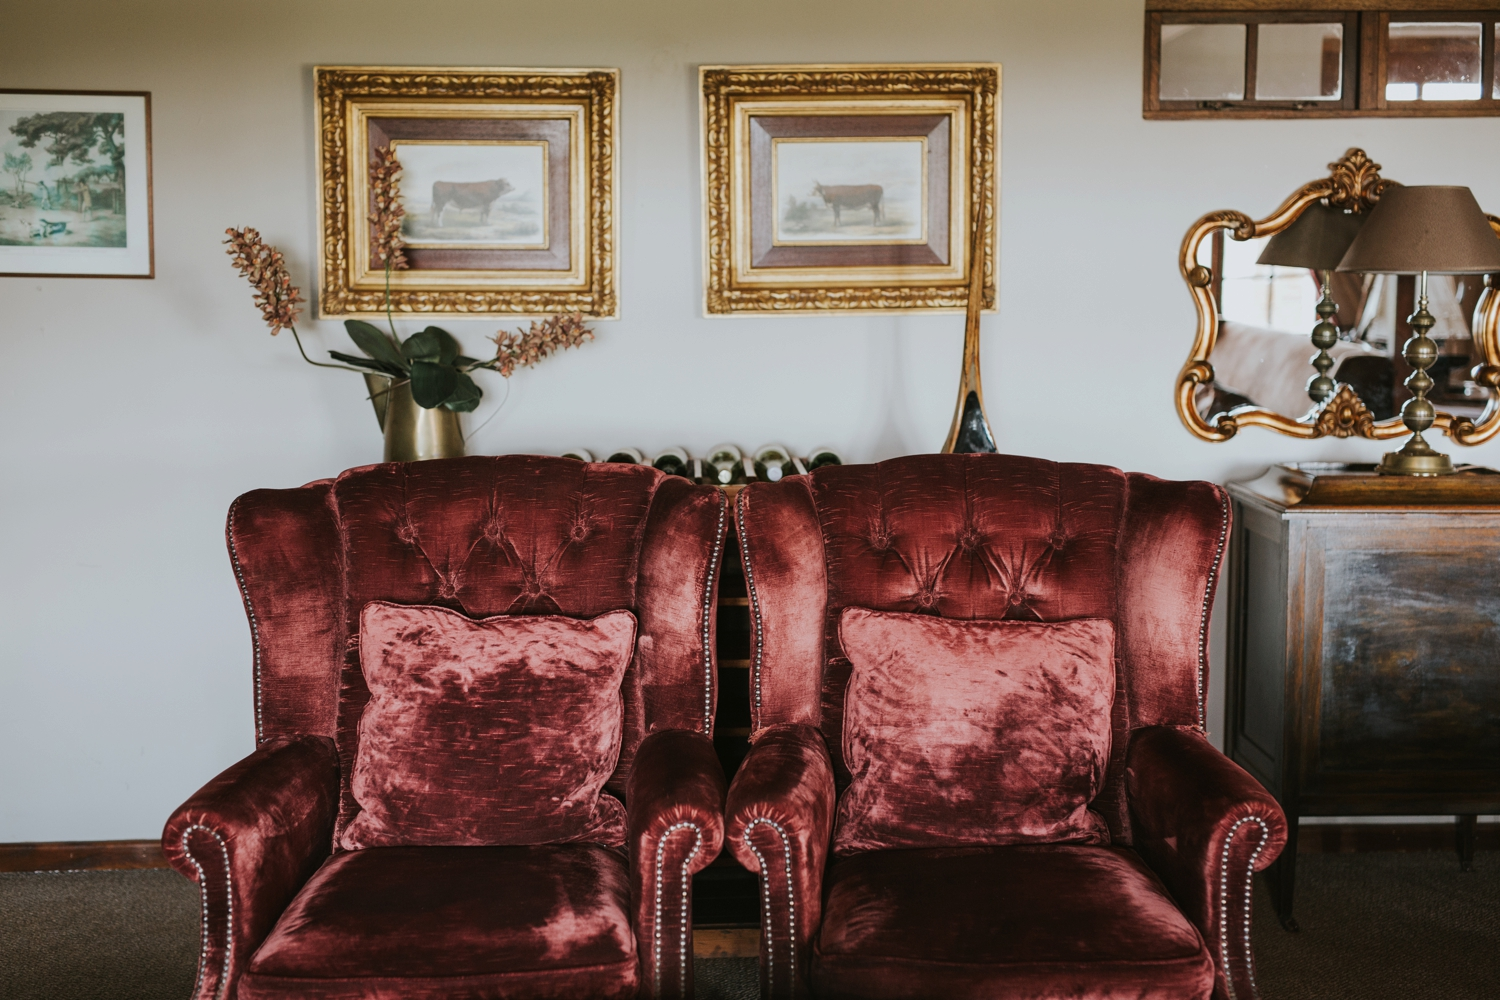 Red velvet couches in Cecil Green Park House